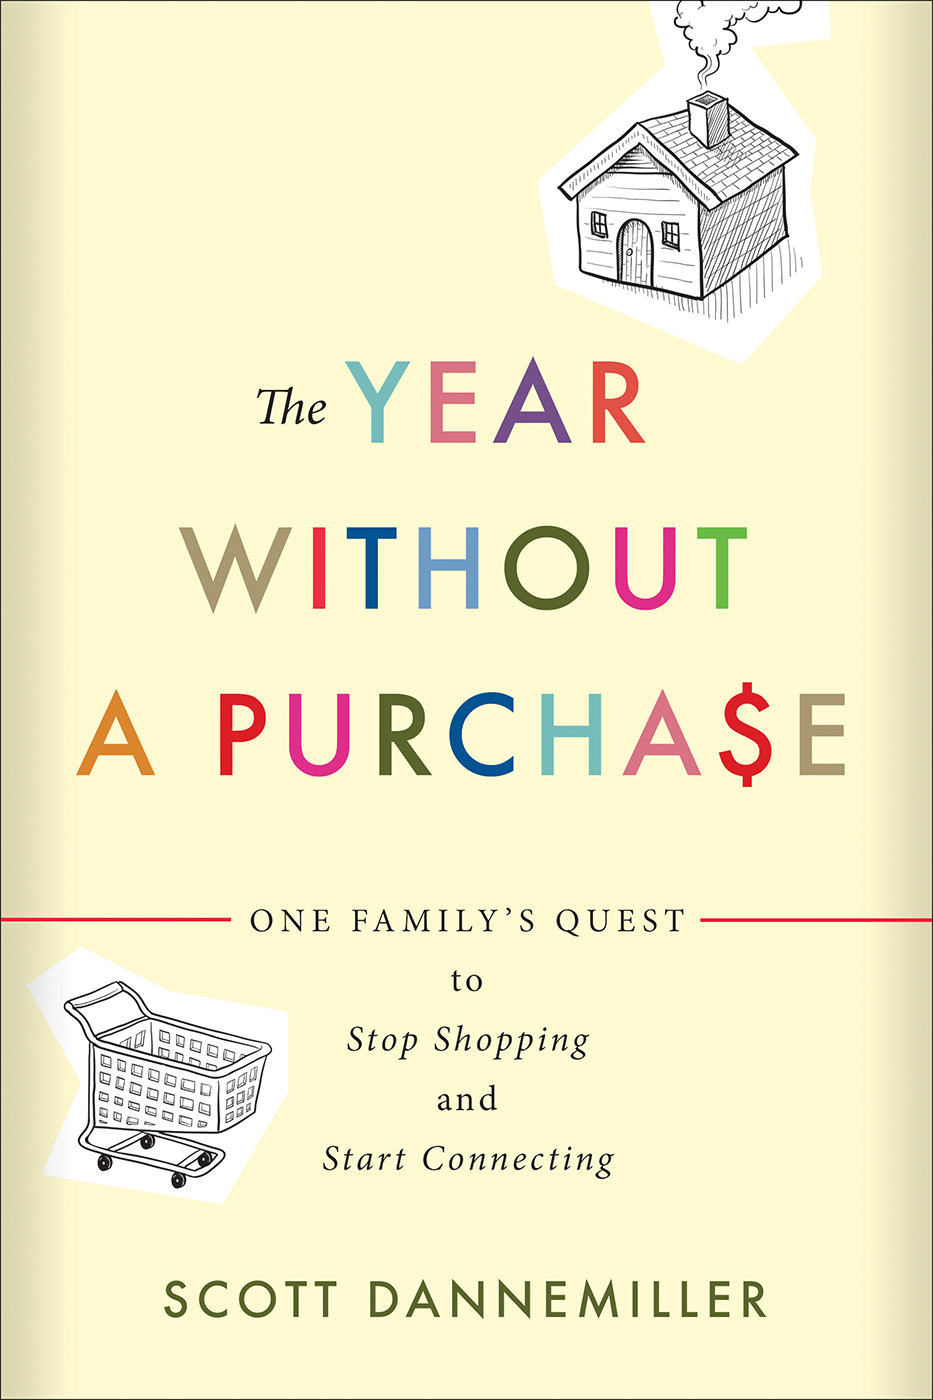 The Year without a Purchase